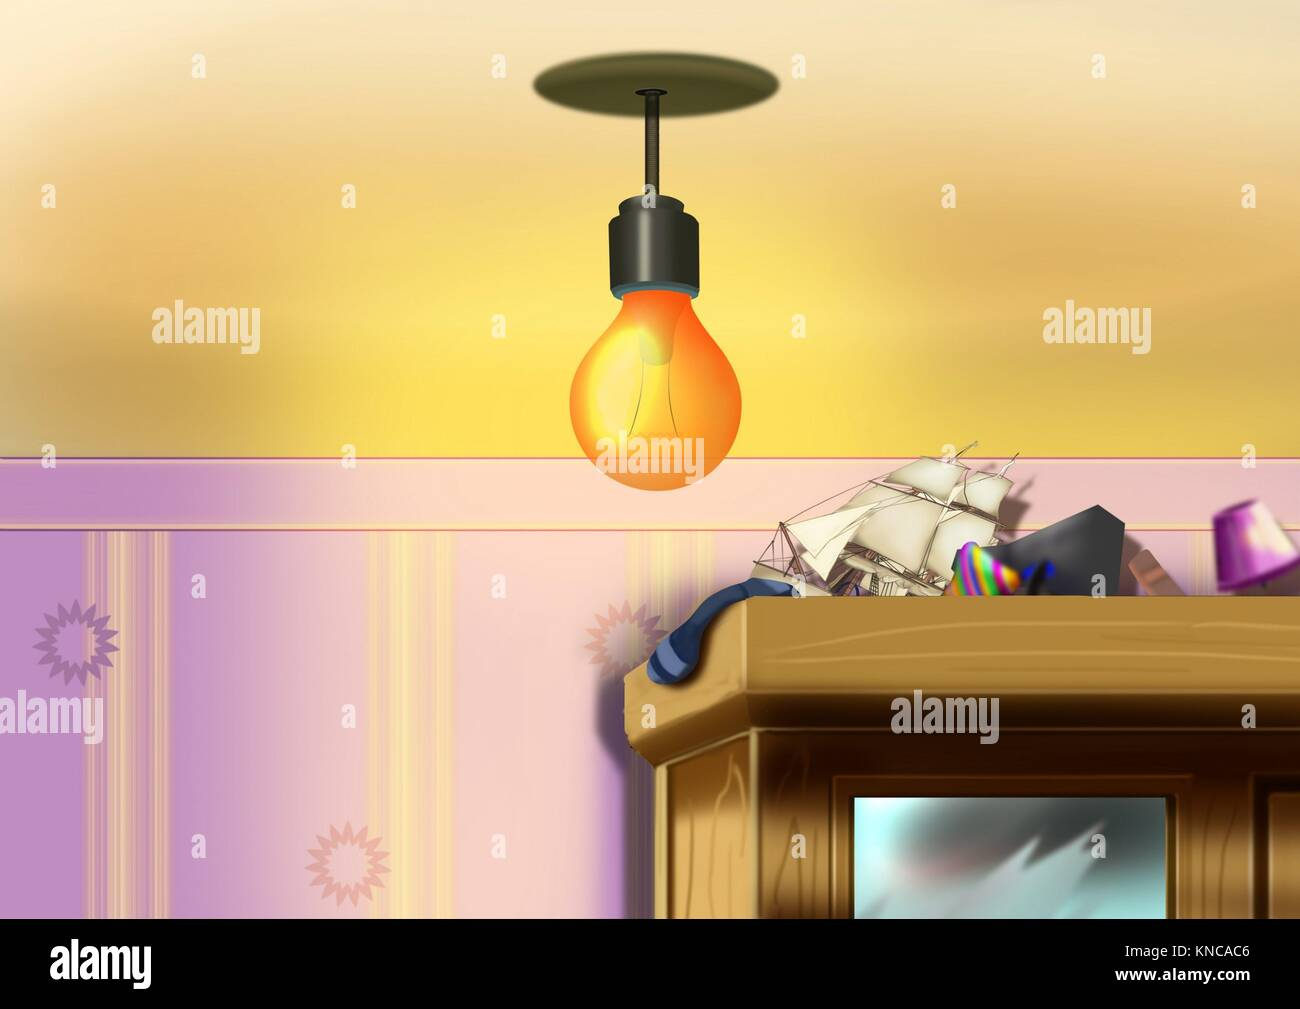 Digital painting of the lamp. - Stock Image